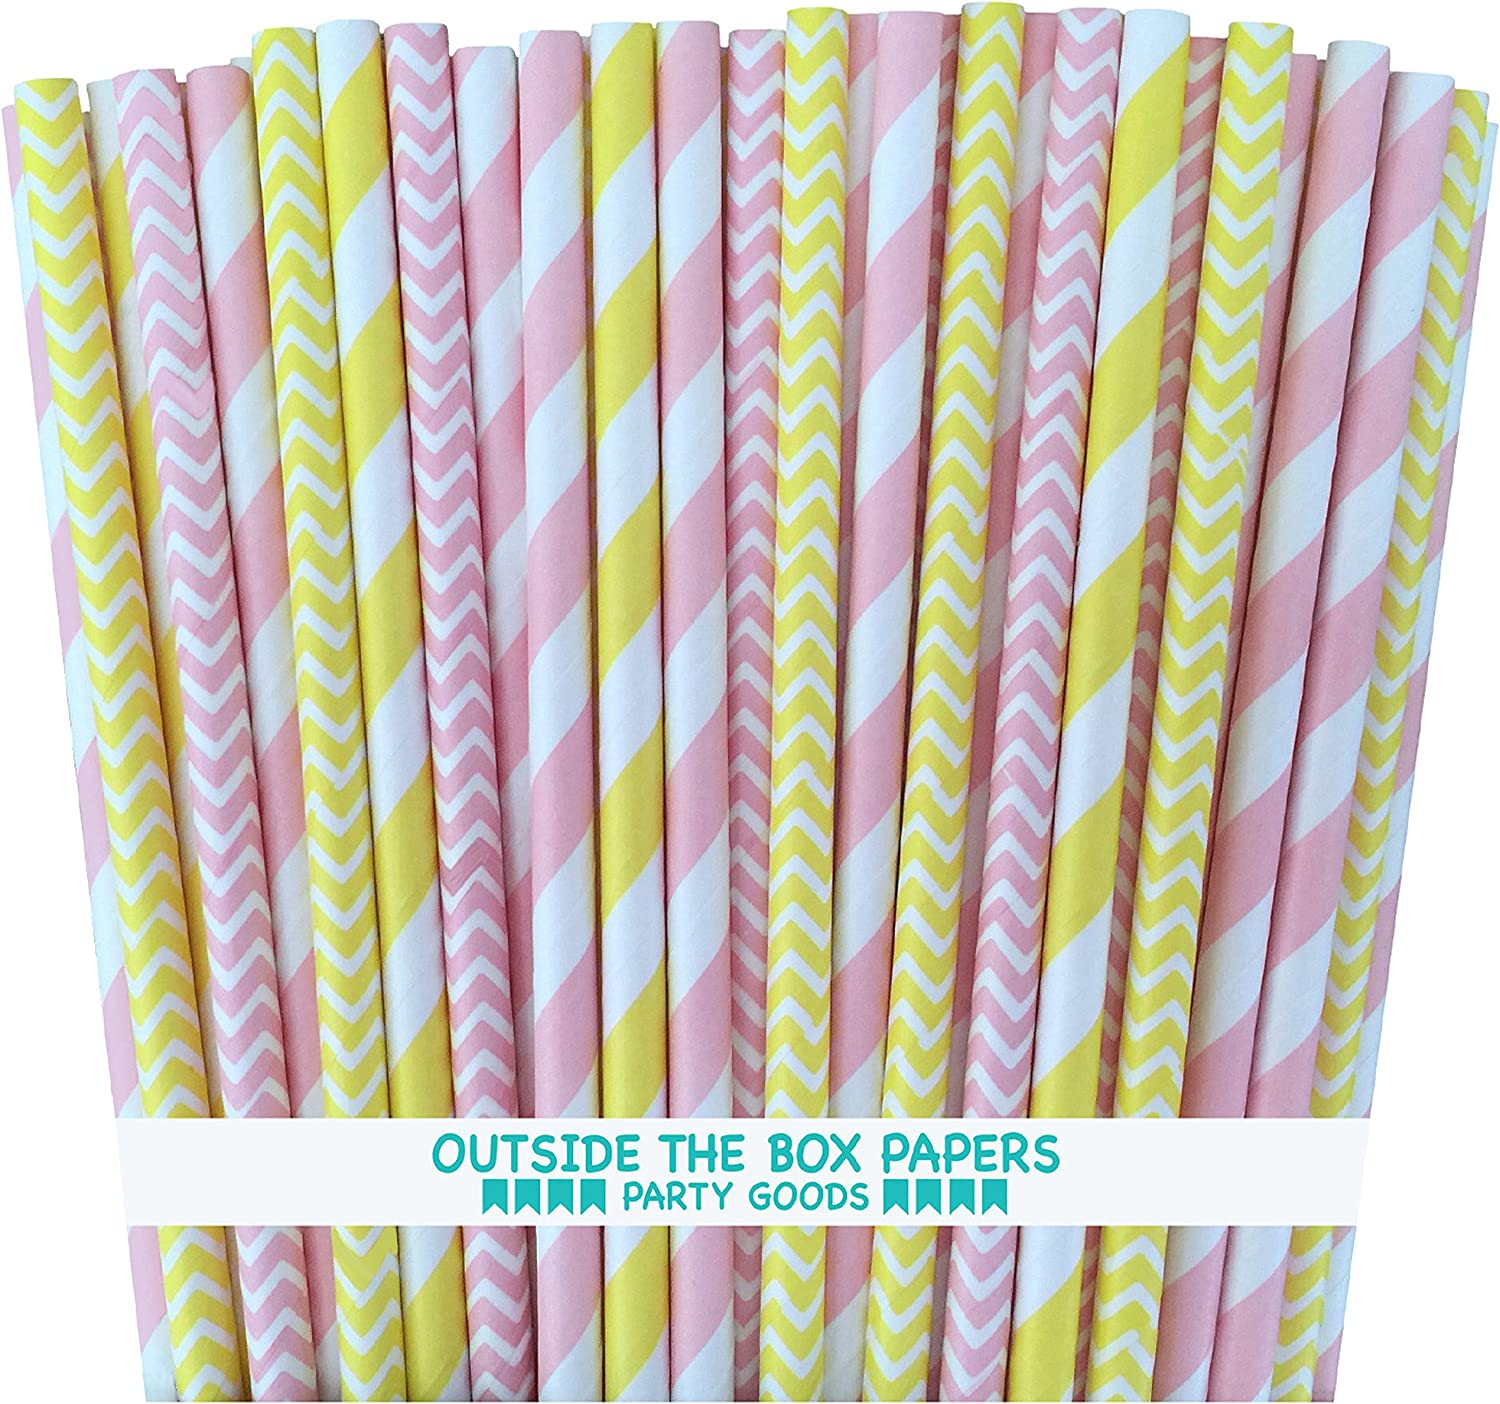 Outside the Box Papers Pink and Yellow Dot Chevron Paper Straws 7.75 Inches 100 Pack Pink, Yellow, White